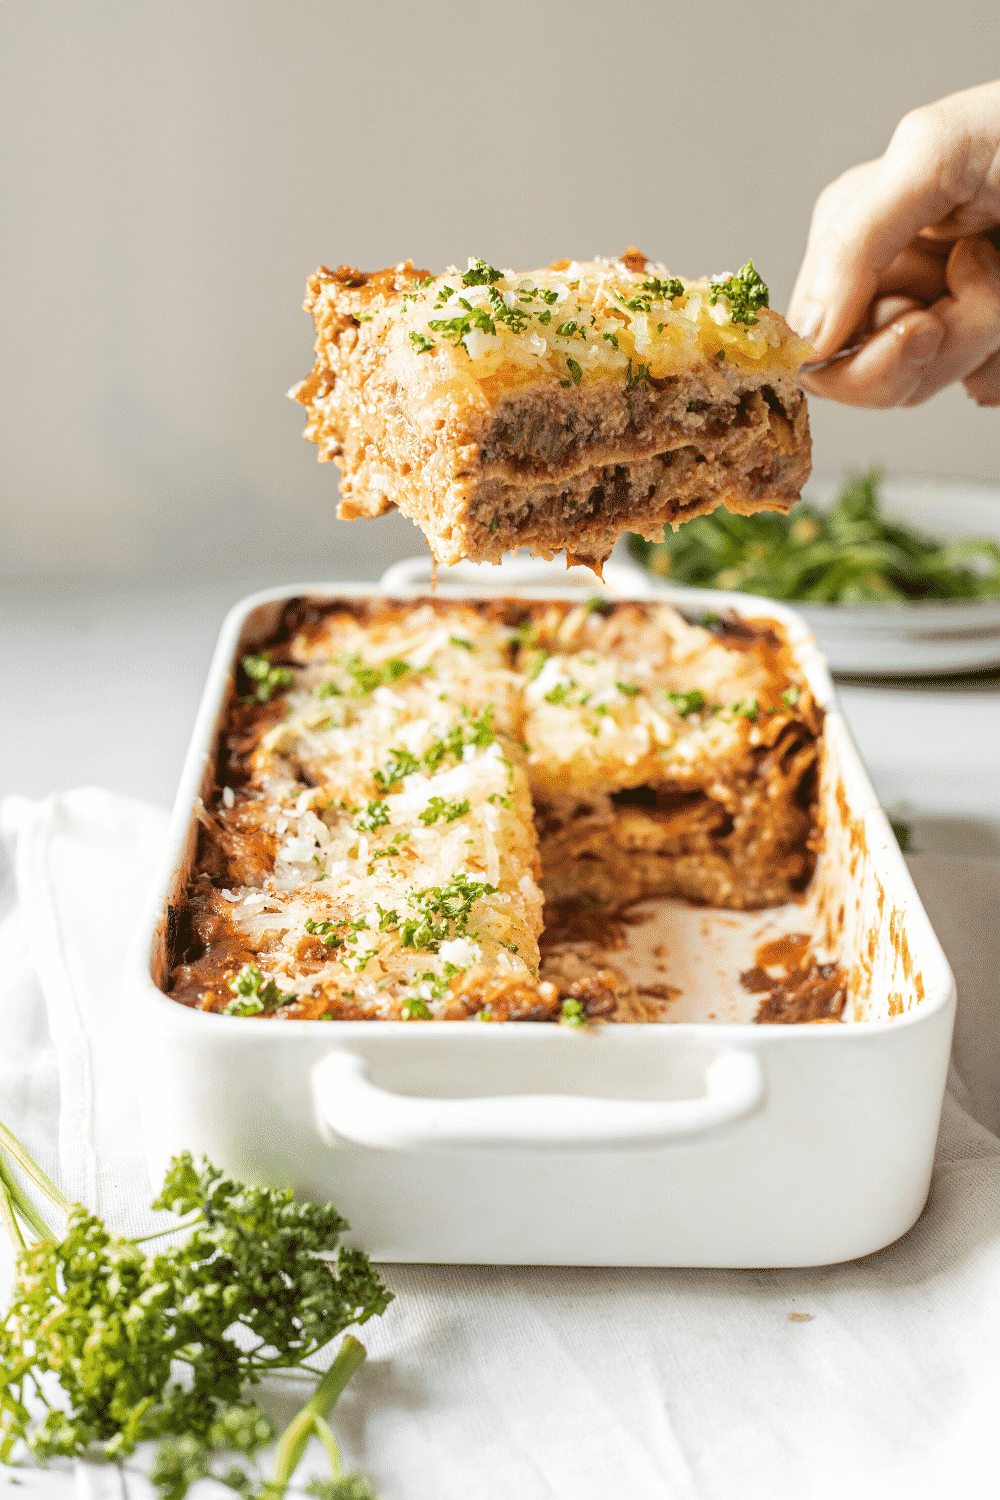 A baking dish filled with vegan lasagna. A few sliced of lasagna are taken out of the dish and a hand is holding a server above the dish with a piece of vegan lasagna on it.